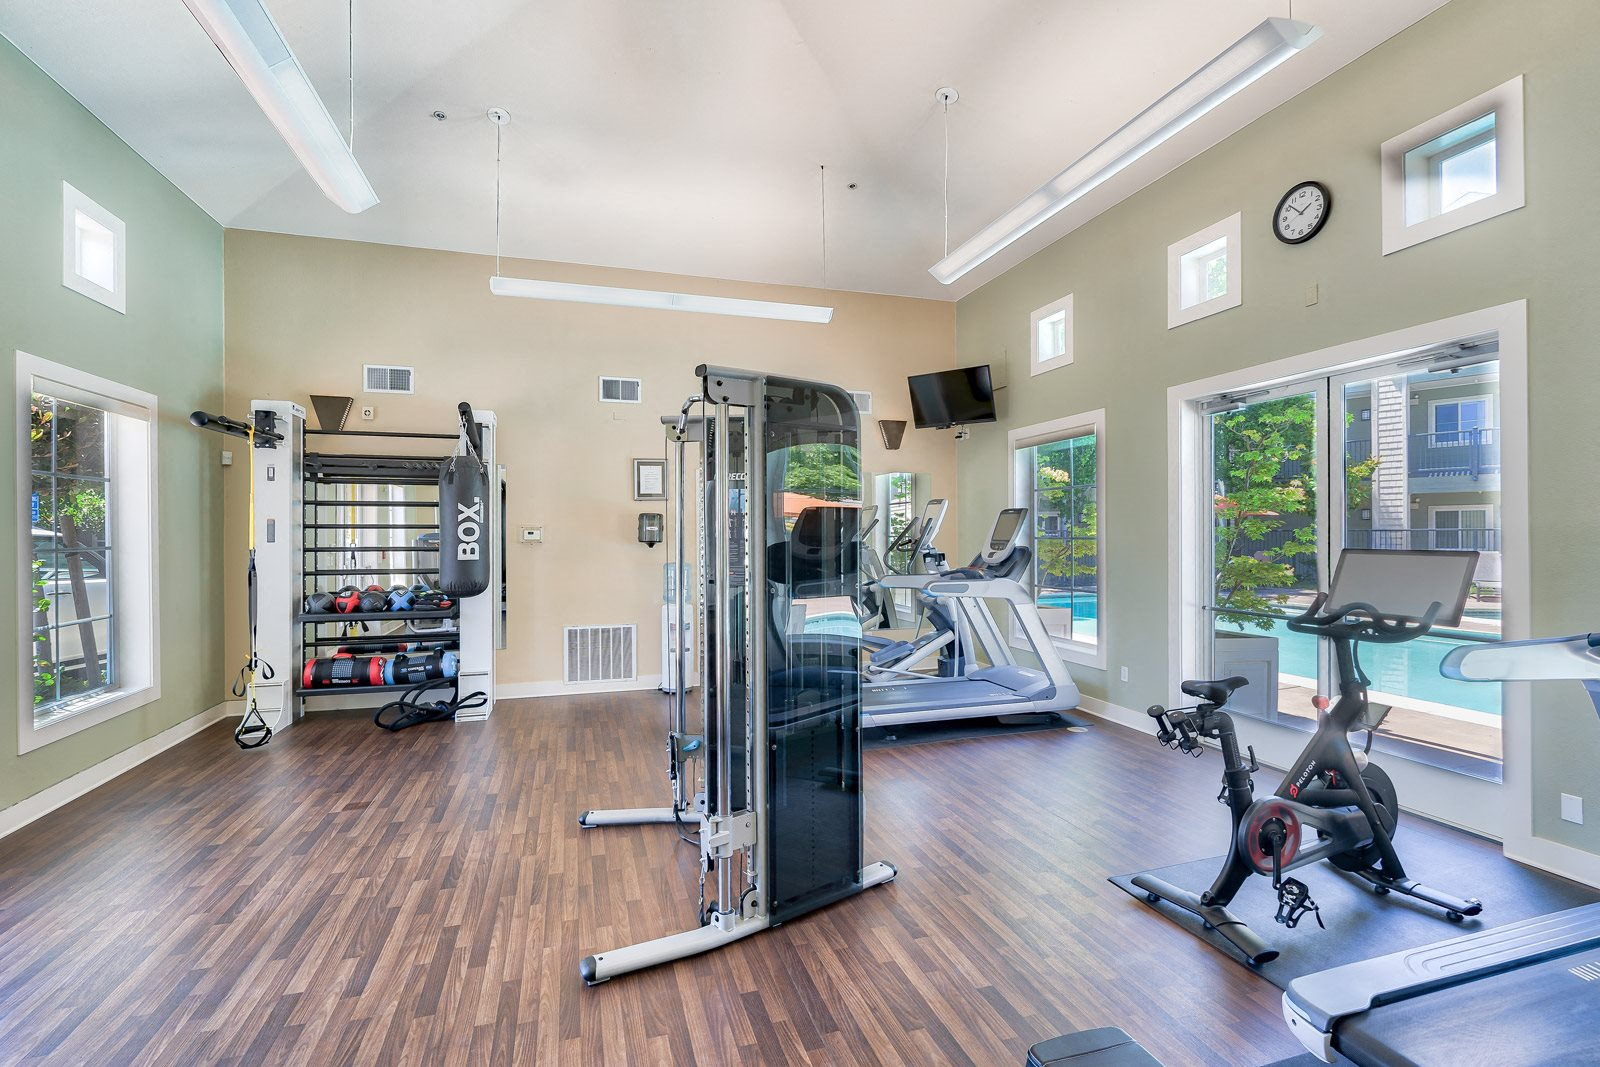 Fully-Equipped Fitness Center at The Kensington, 1552 East Gate Way, #126, Pleasanton